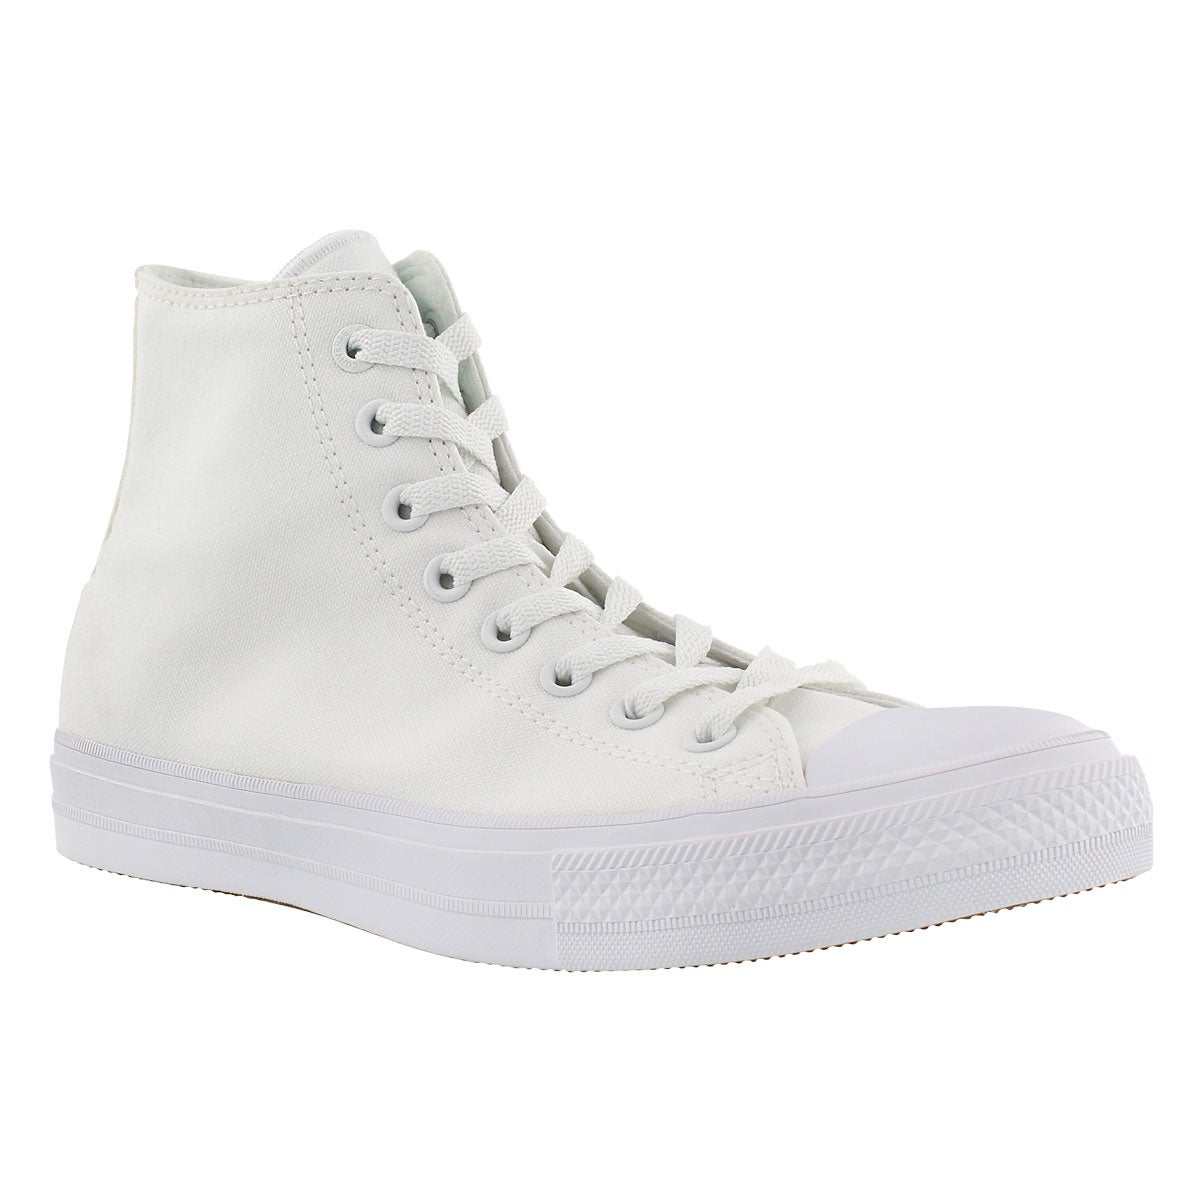 Men's CHUCK II VIZ FLOW white hi tops